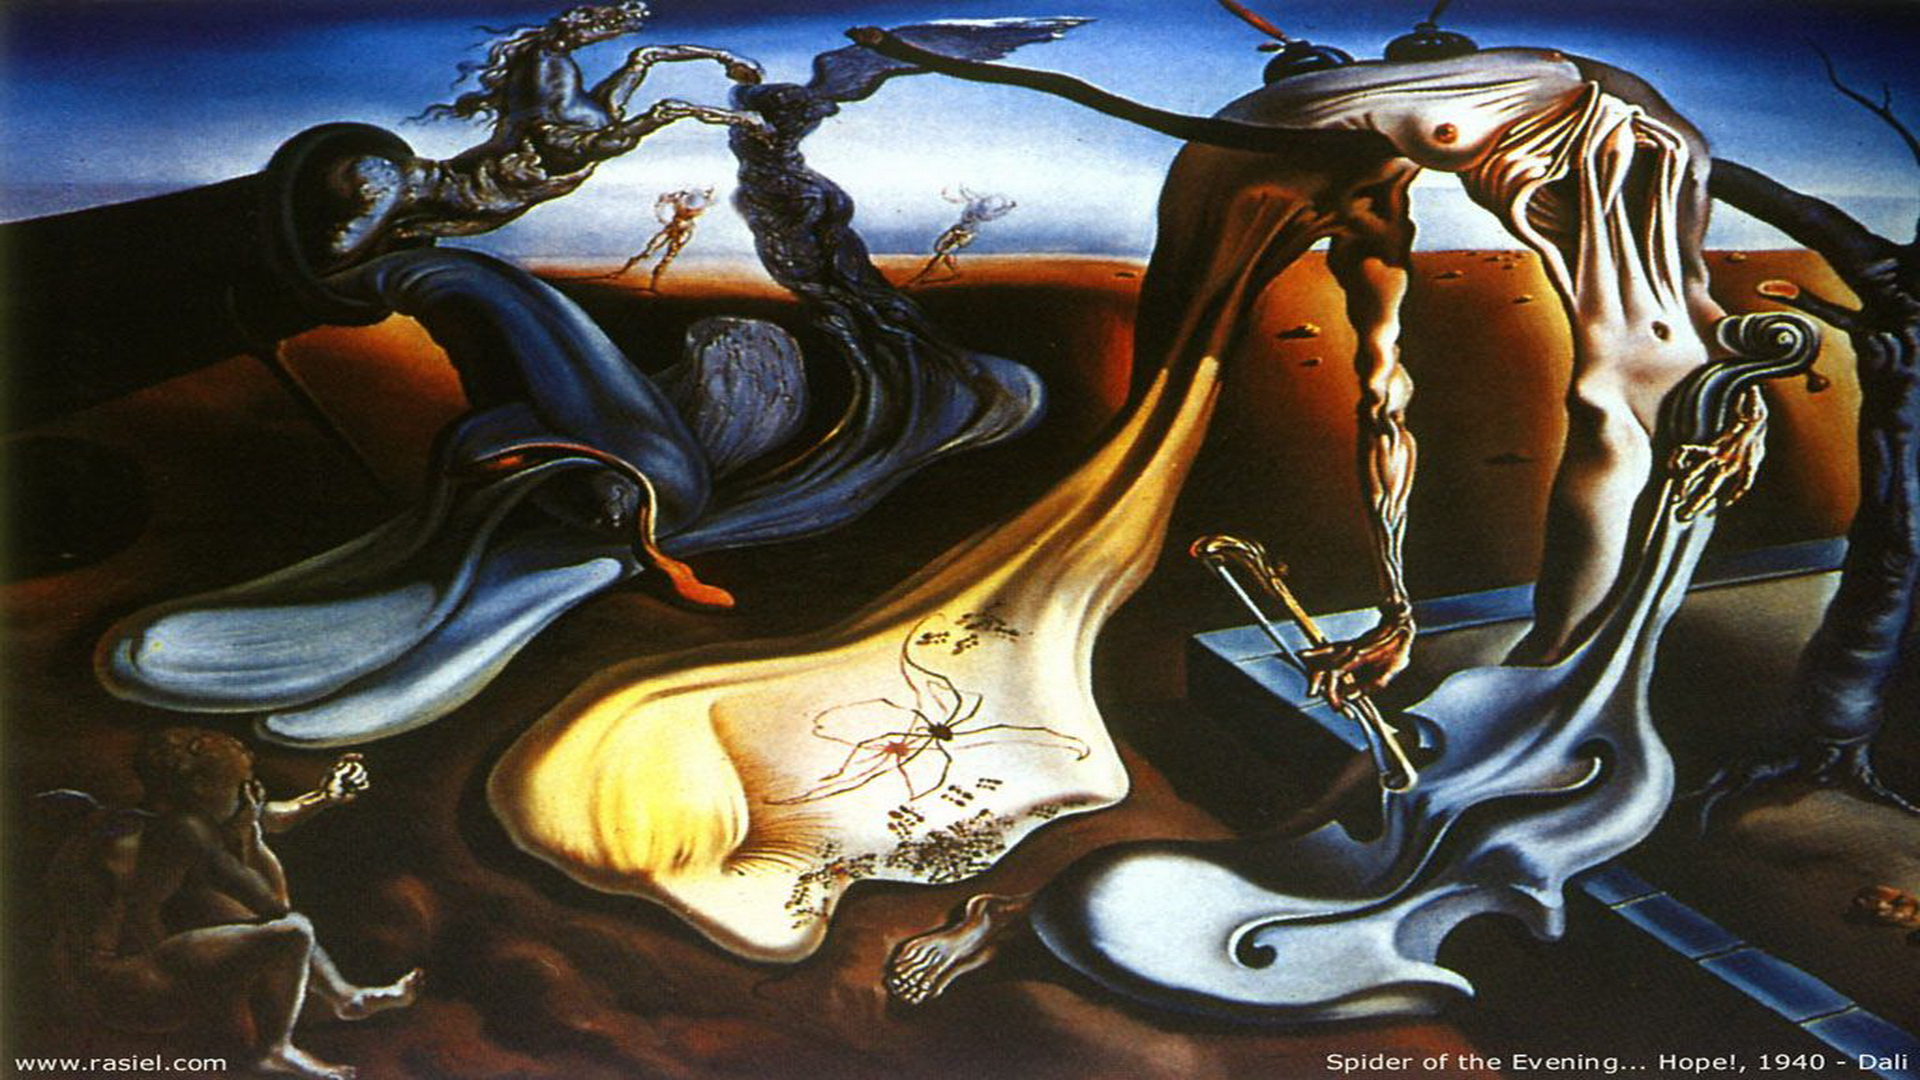 a report on the people who influenced the surrealist painter salvador dali Salvador feline action dali lived to be among the most versatile and creative artists of the twentieth century dali was born on the 1 lath of march 1904 in spain and he was one of history greatest surrealist and broad-minded artists.